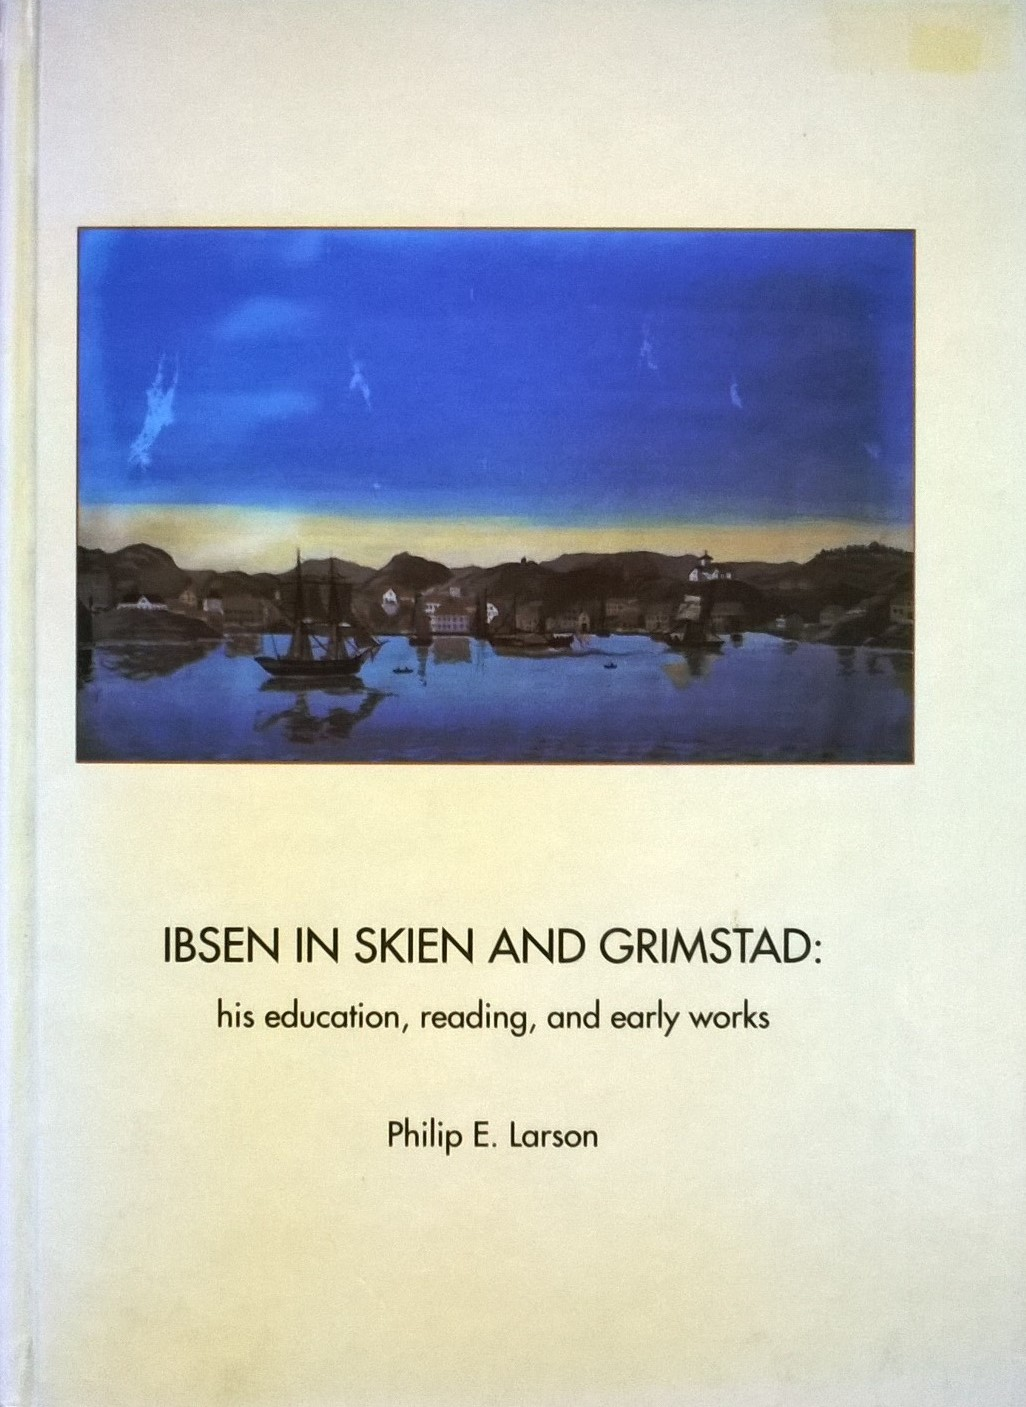 Larson, Philip E. Ibsen in Skien and Grimstad: his education, reading, and early works